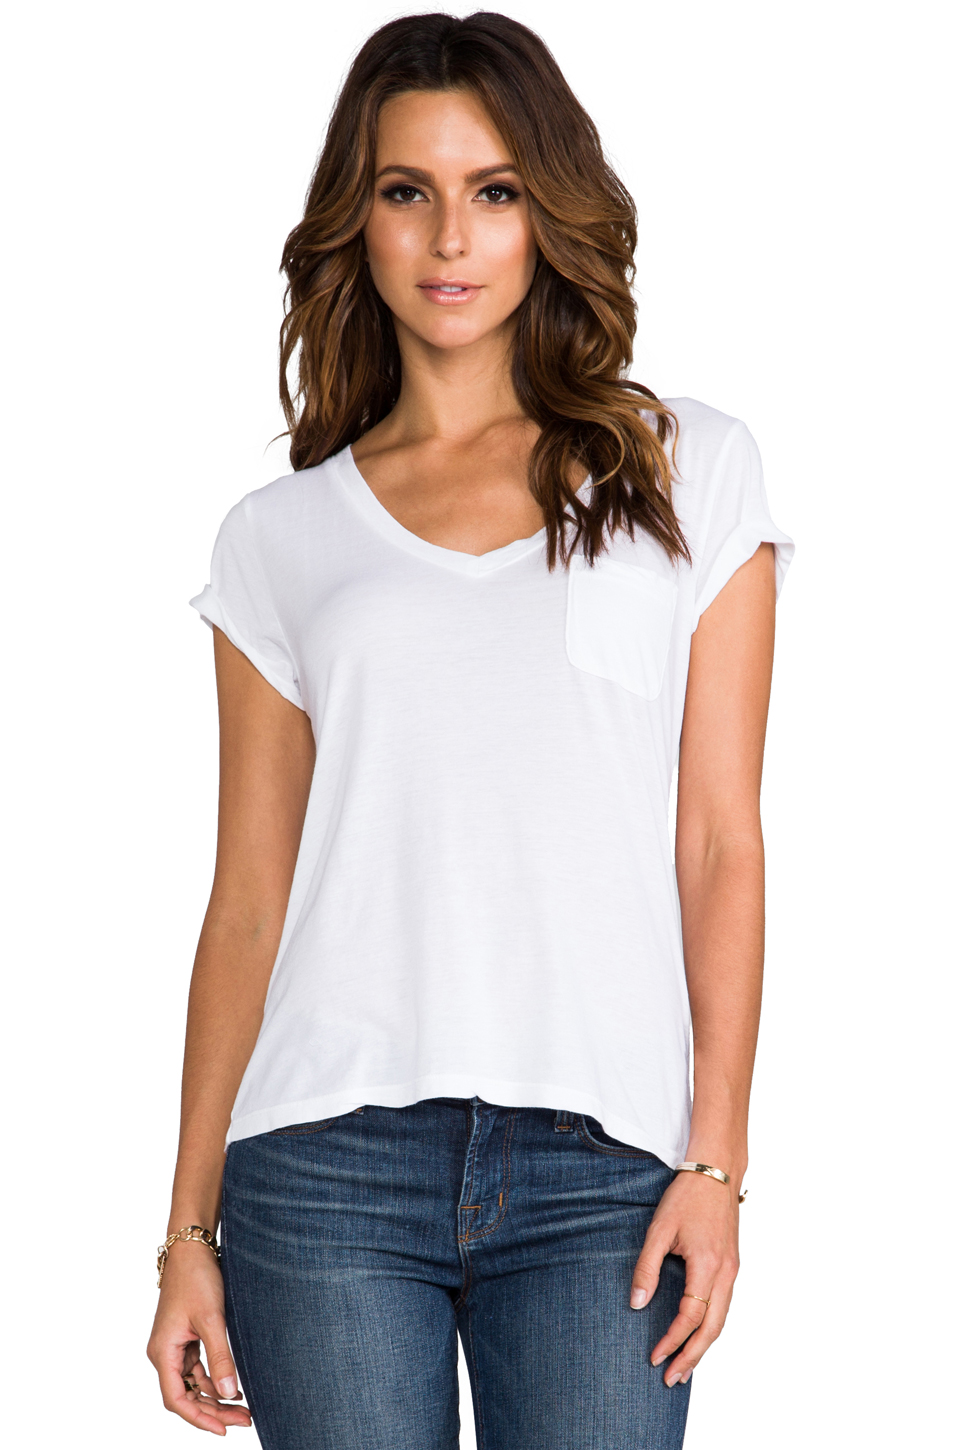 AG Adriano Goldschmied Pocket V Neck Tee in White